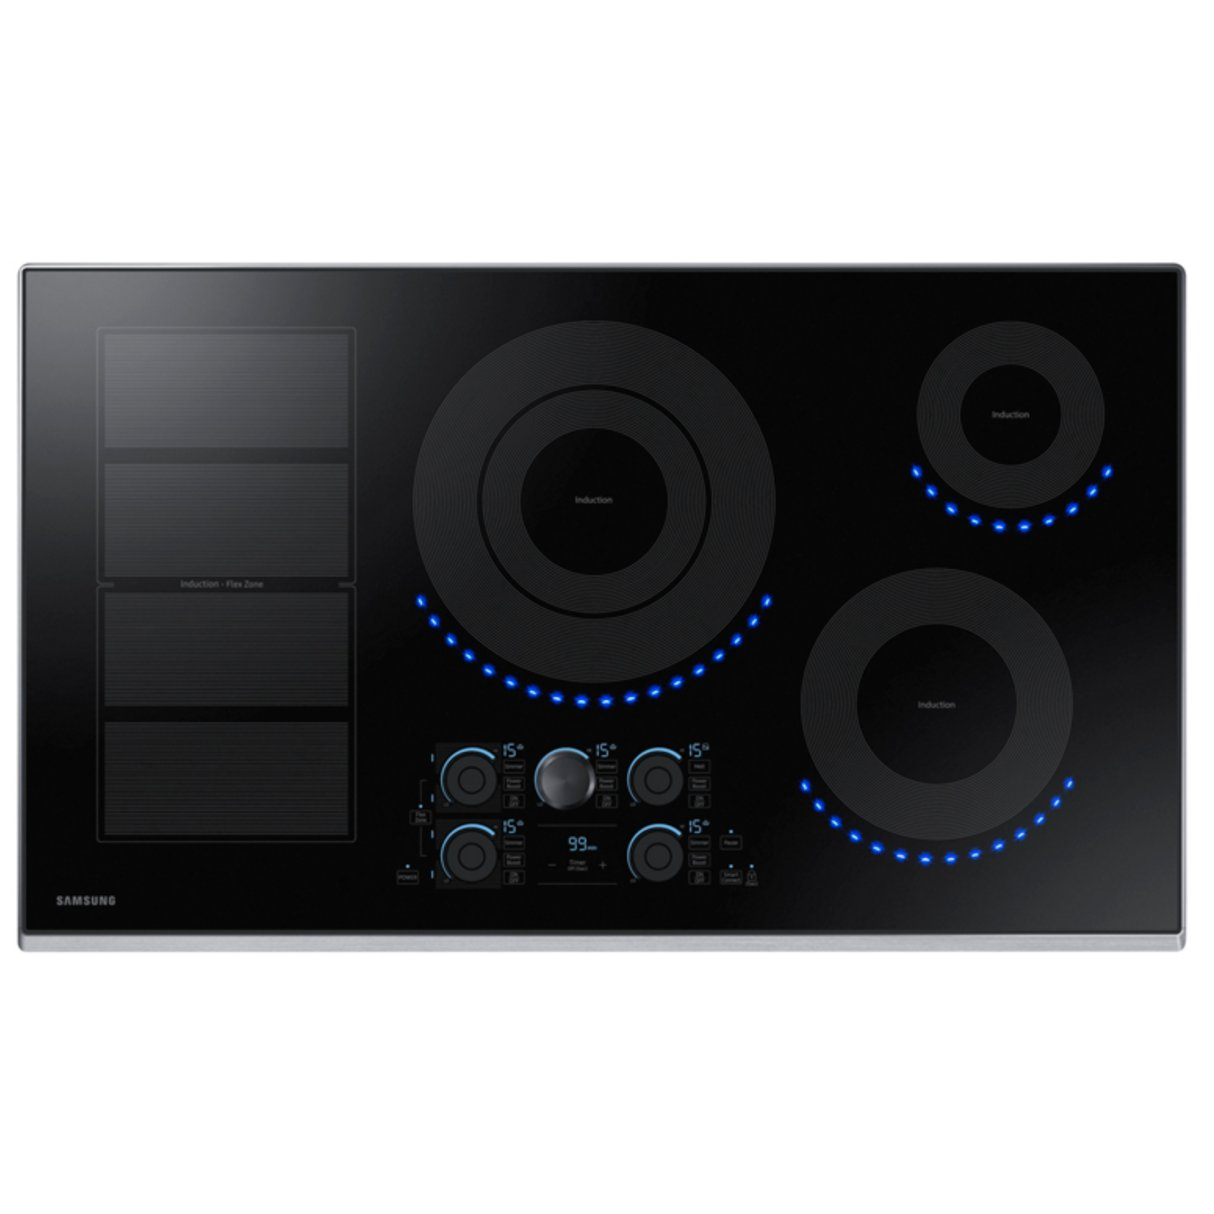 Samsung 36 Inch Induction Cooktop with Virtual Flame - Black